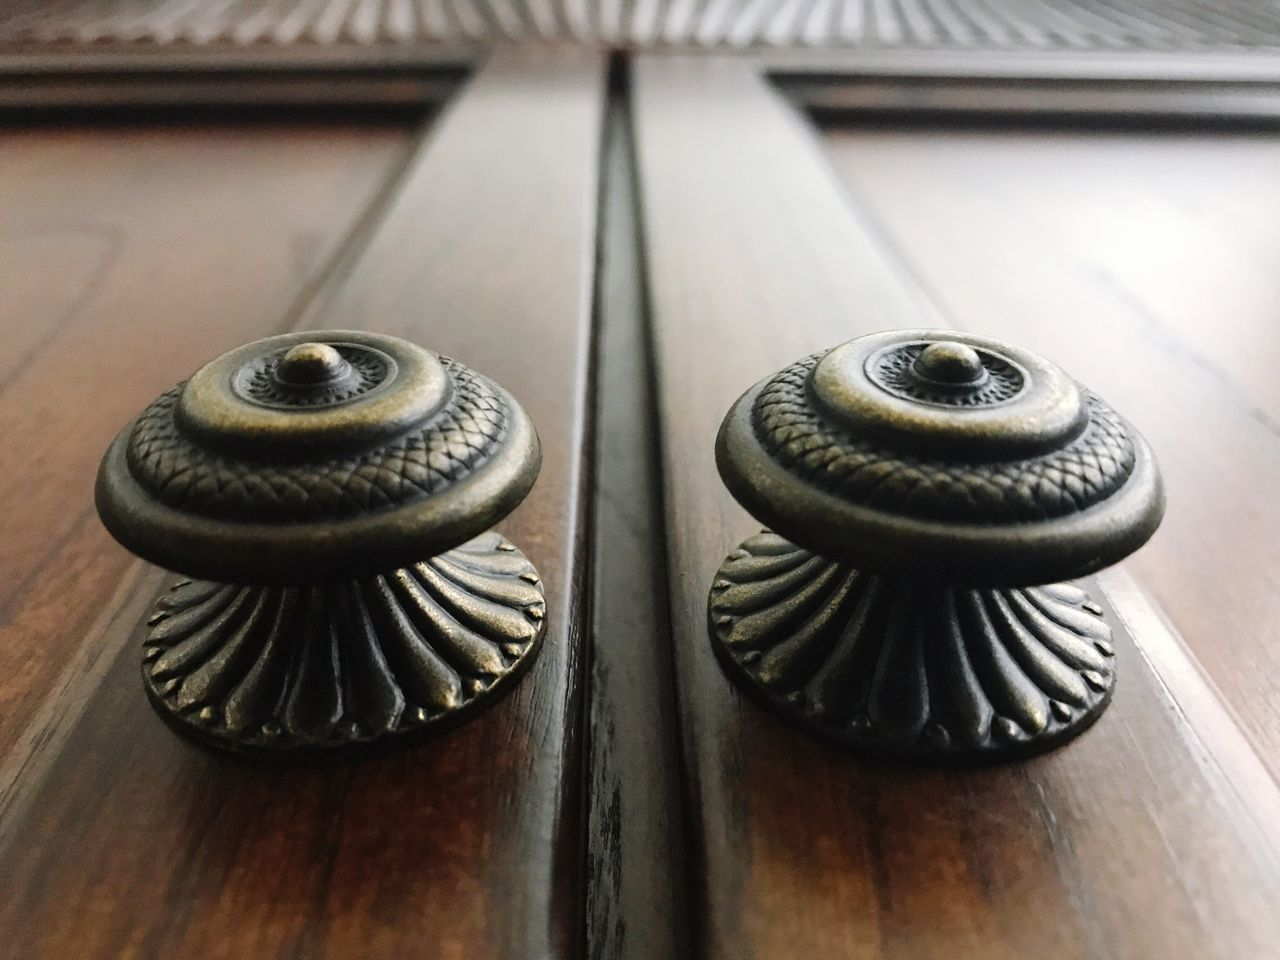 Close-up Metal Focus On Foreground No People Indoors  Table Bolt Nut - Fastener Day Knobs Details Bronze Wood - Material Brown Two Is Better Than One Two Of A Kind Two Lines Right In The Middle Perspective Circle Round Design Symmetry Symmetrical